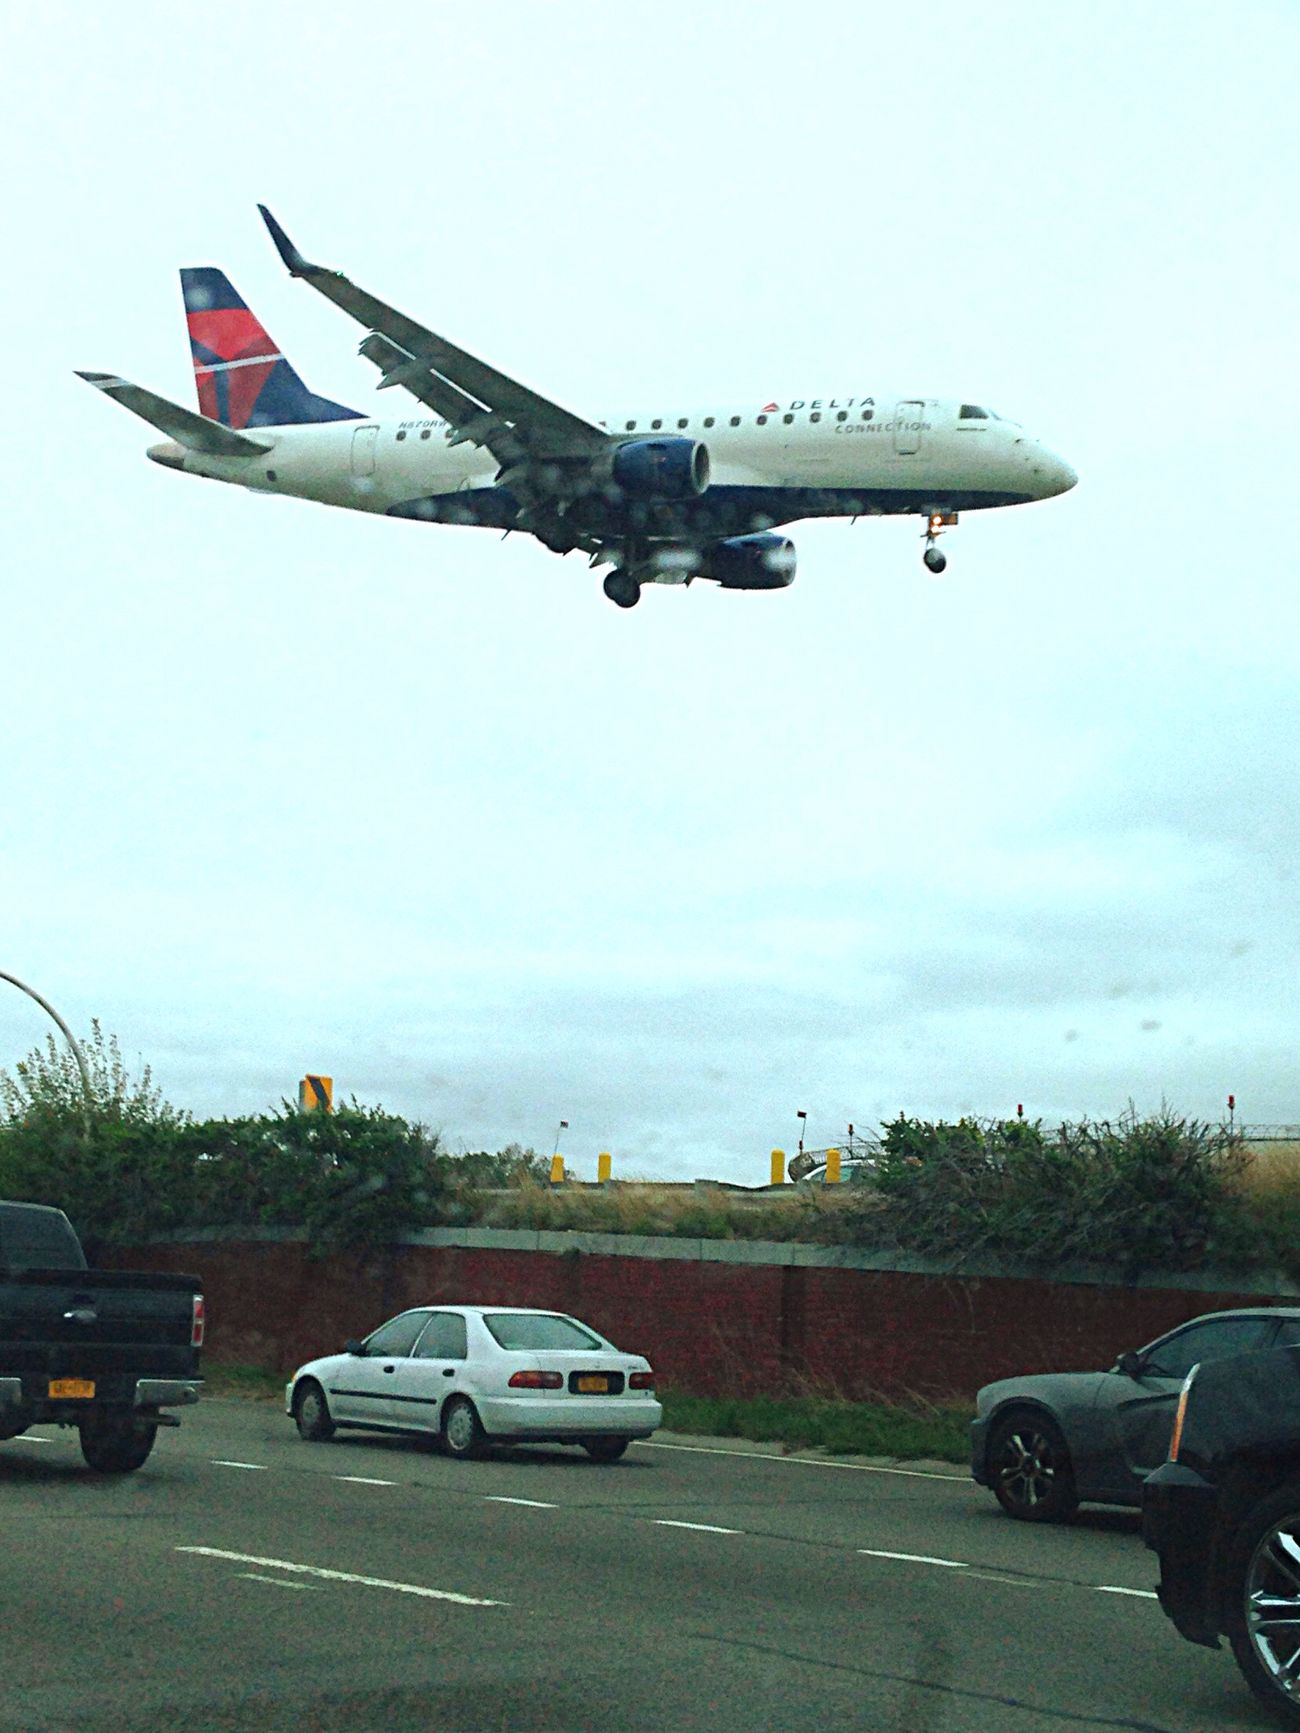 Coming in for landing at LaGuardia Airport AirPlane ✈ Flying New York City Photography Outdoors Transportation Mode Of Transport Airport